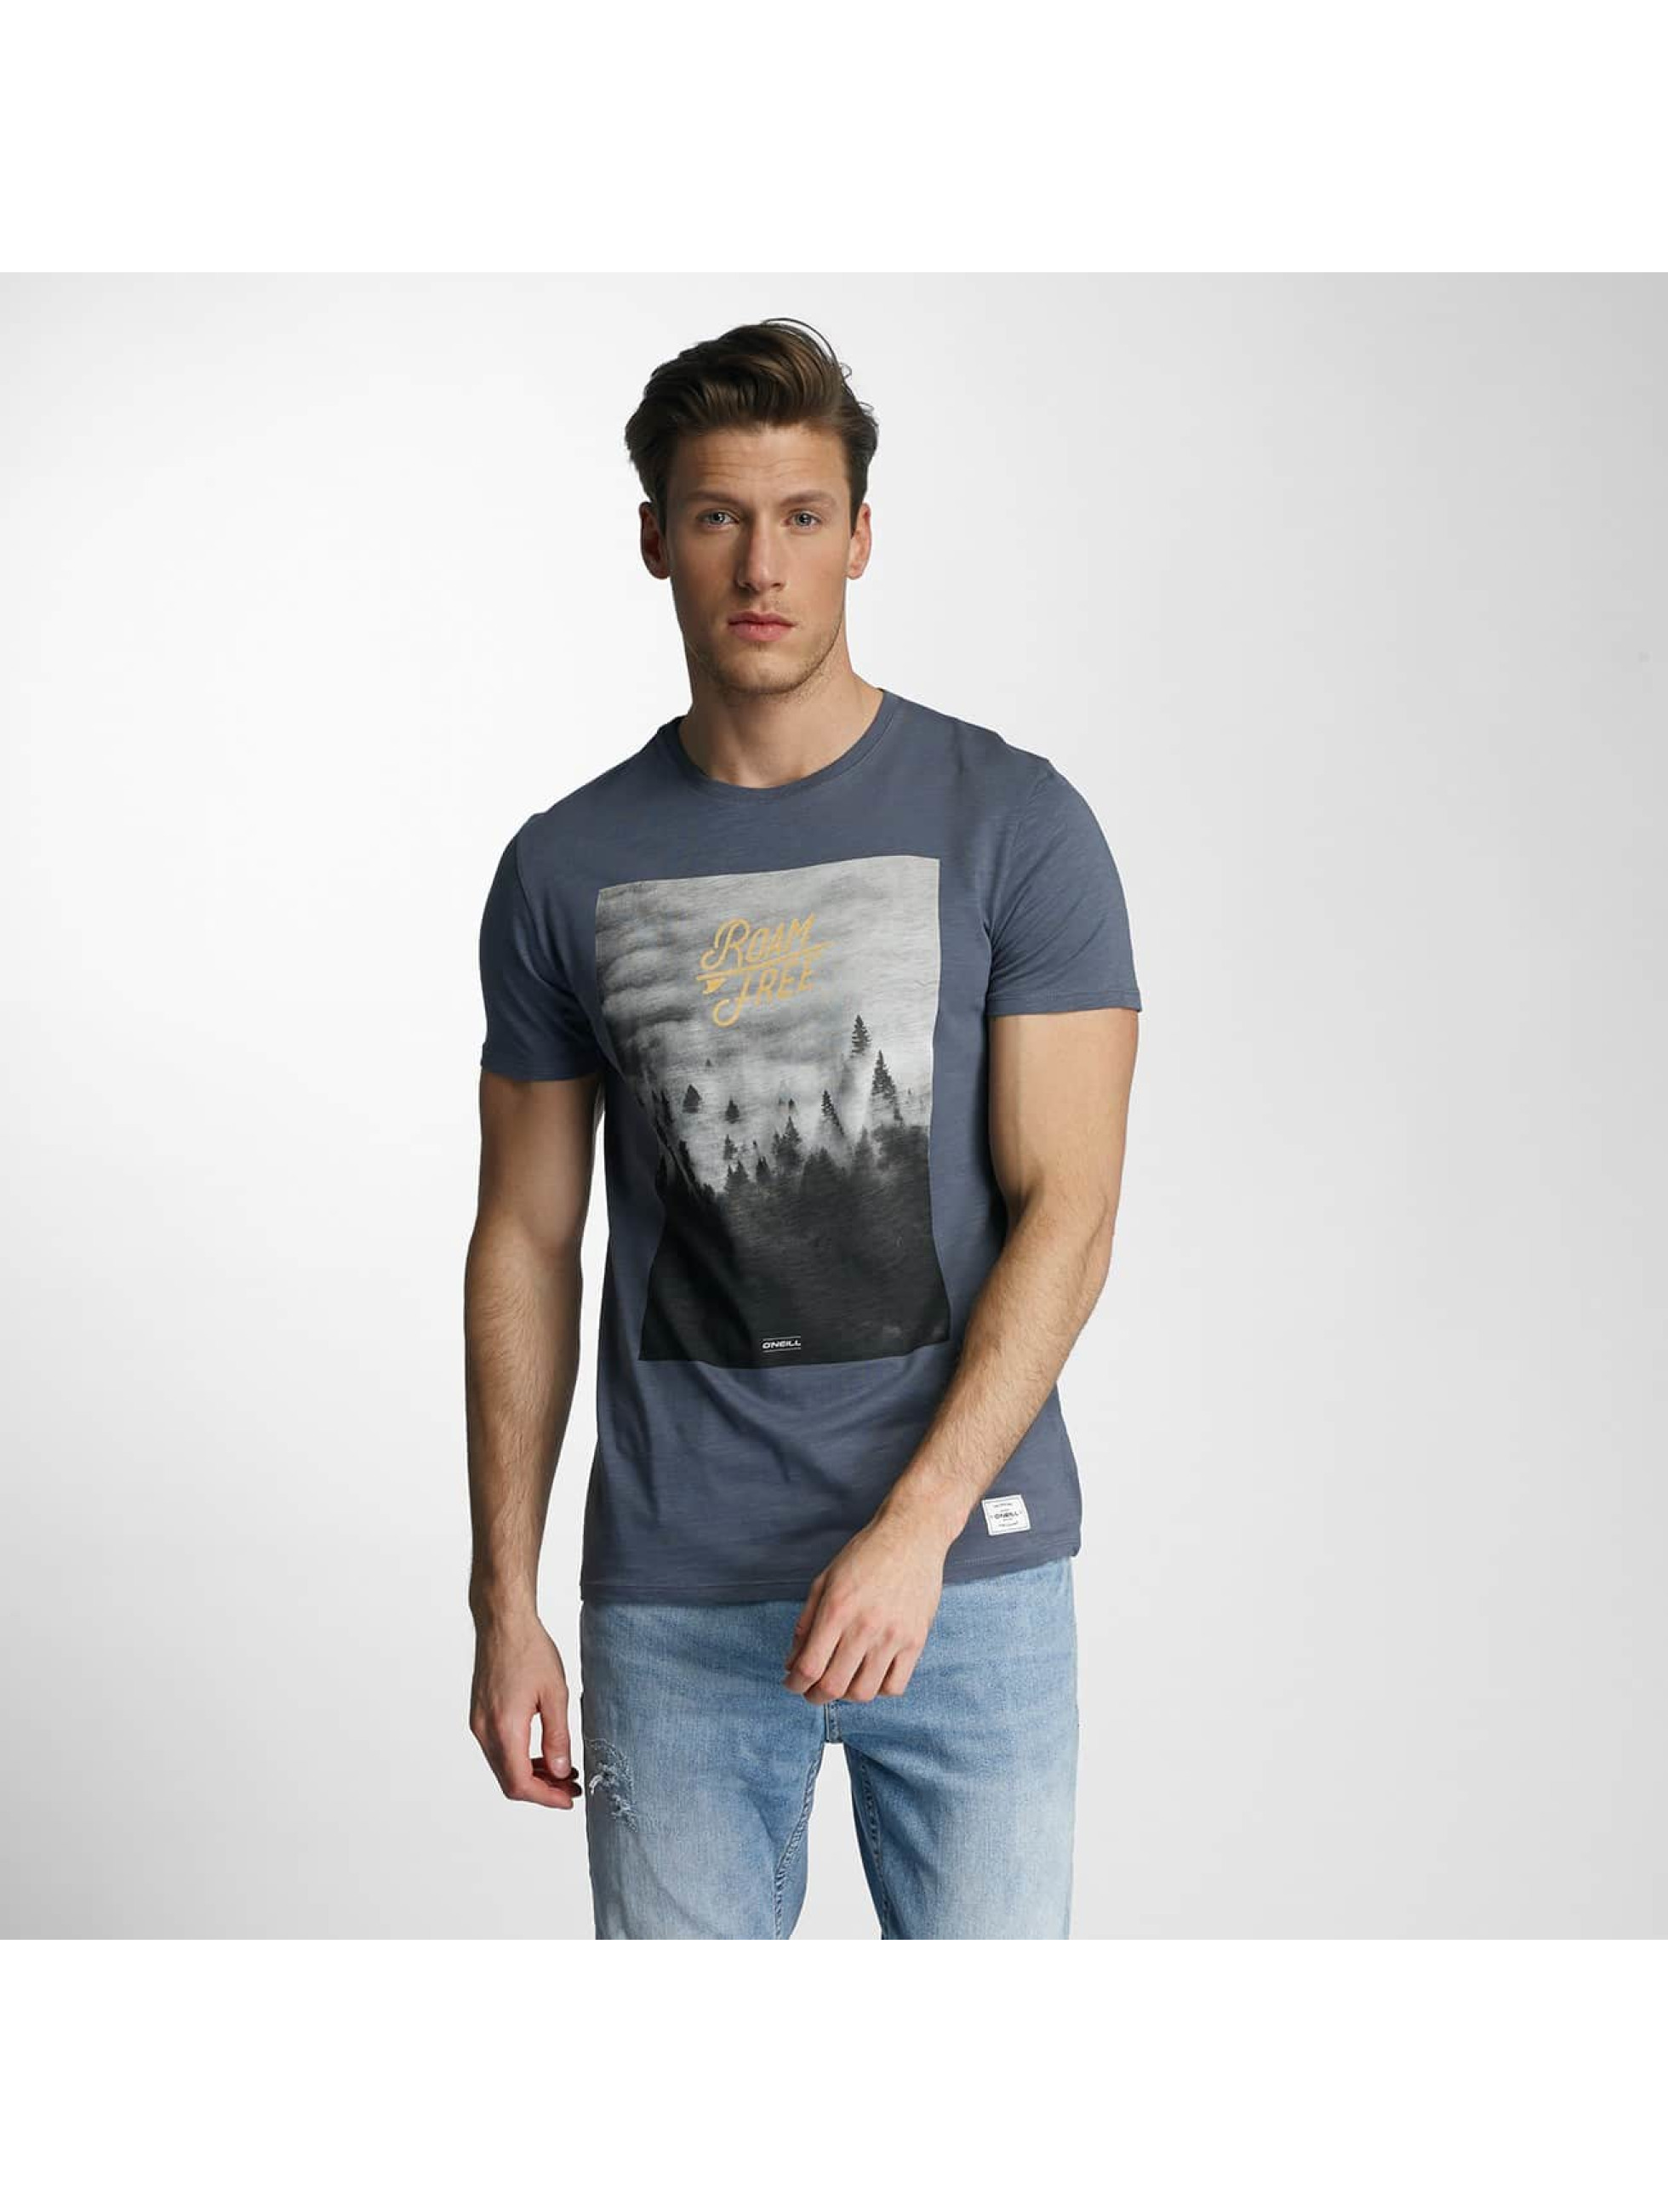 O'NEILL T-Shirt LM Wildlife blue